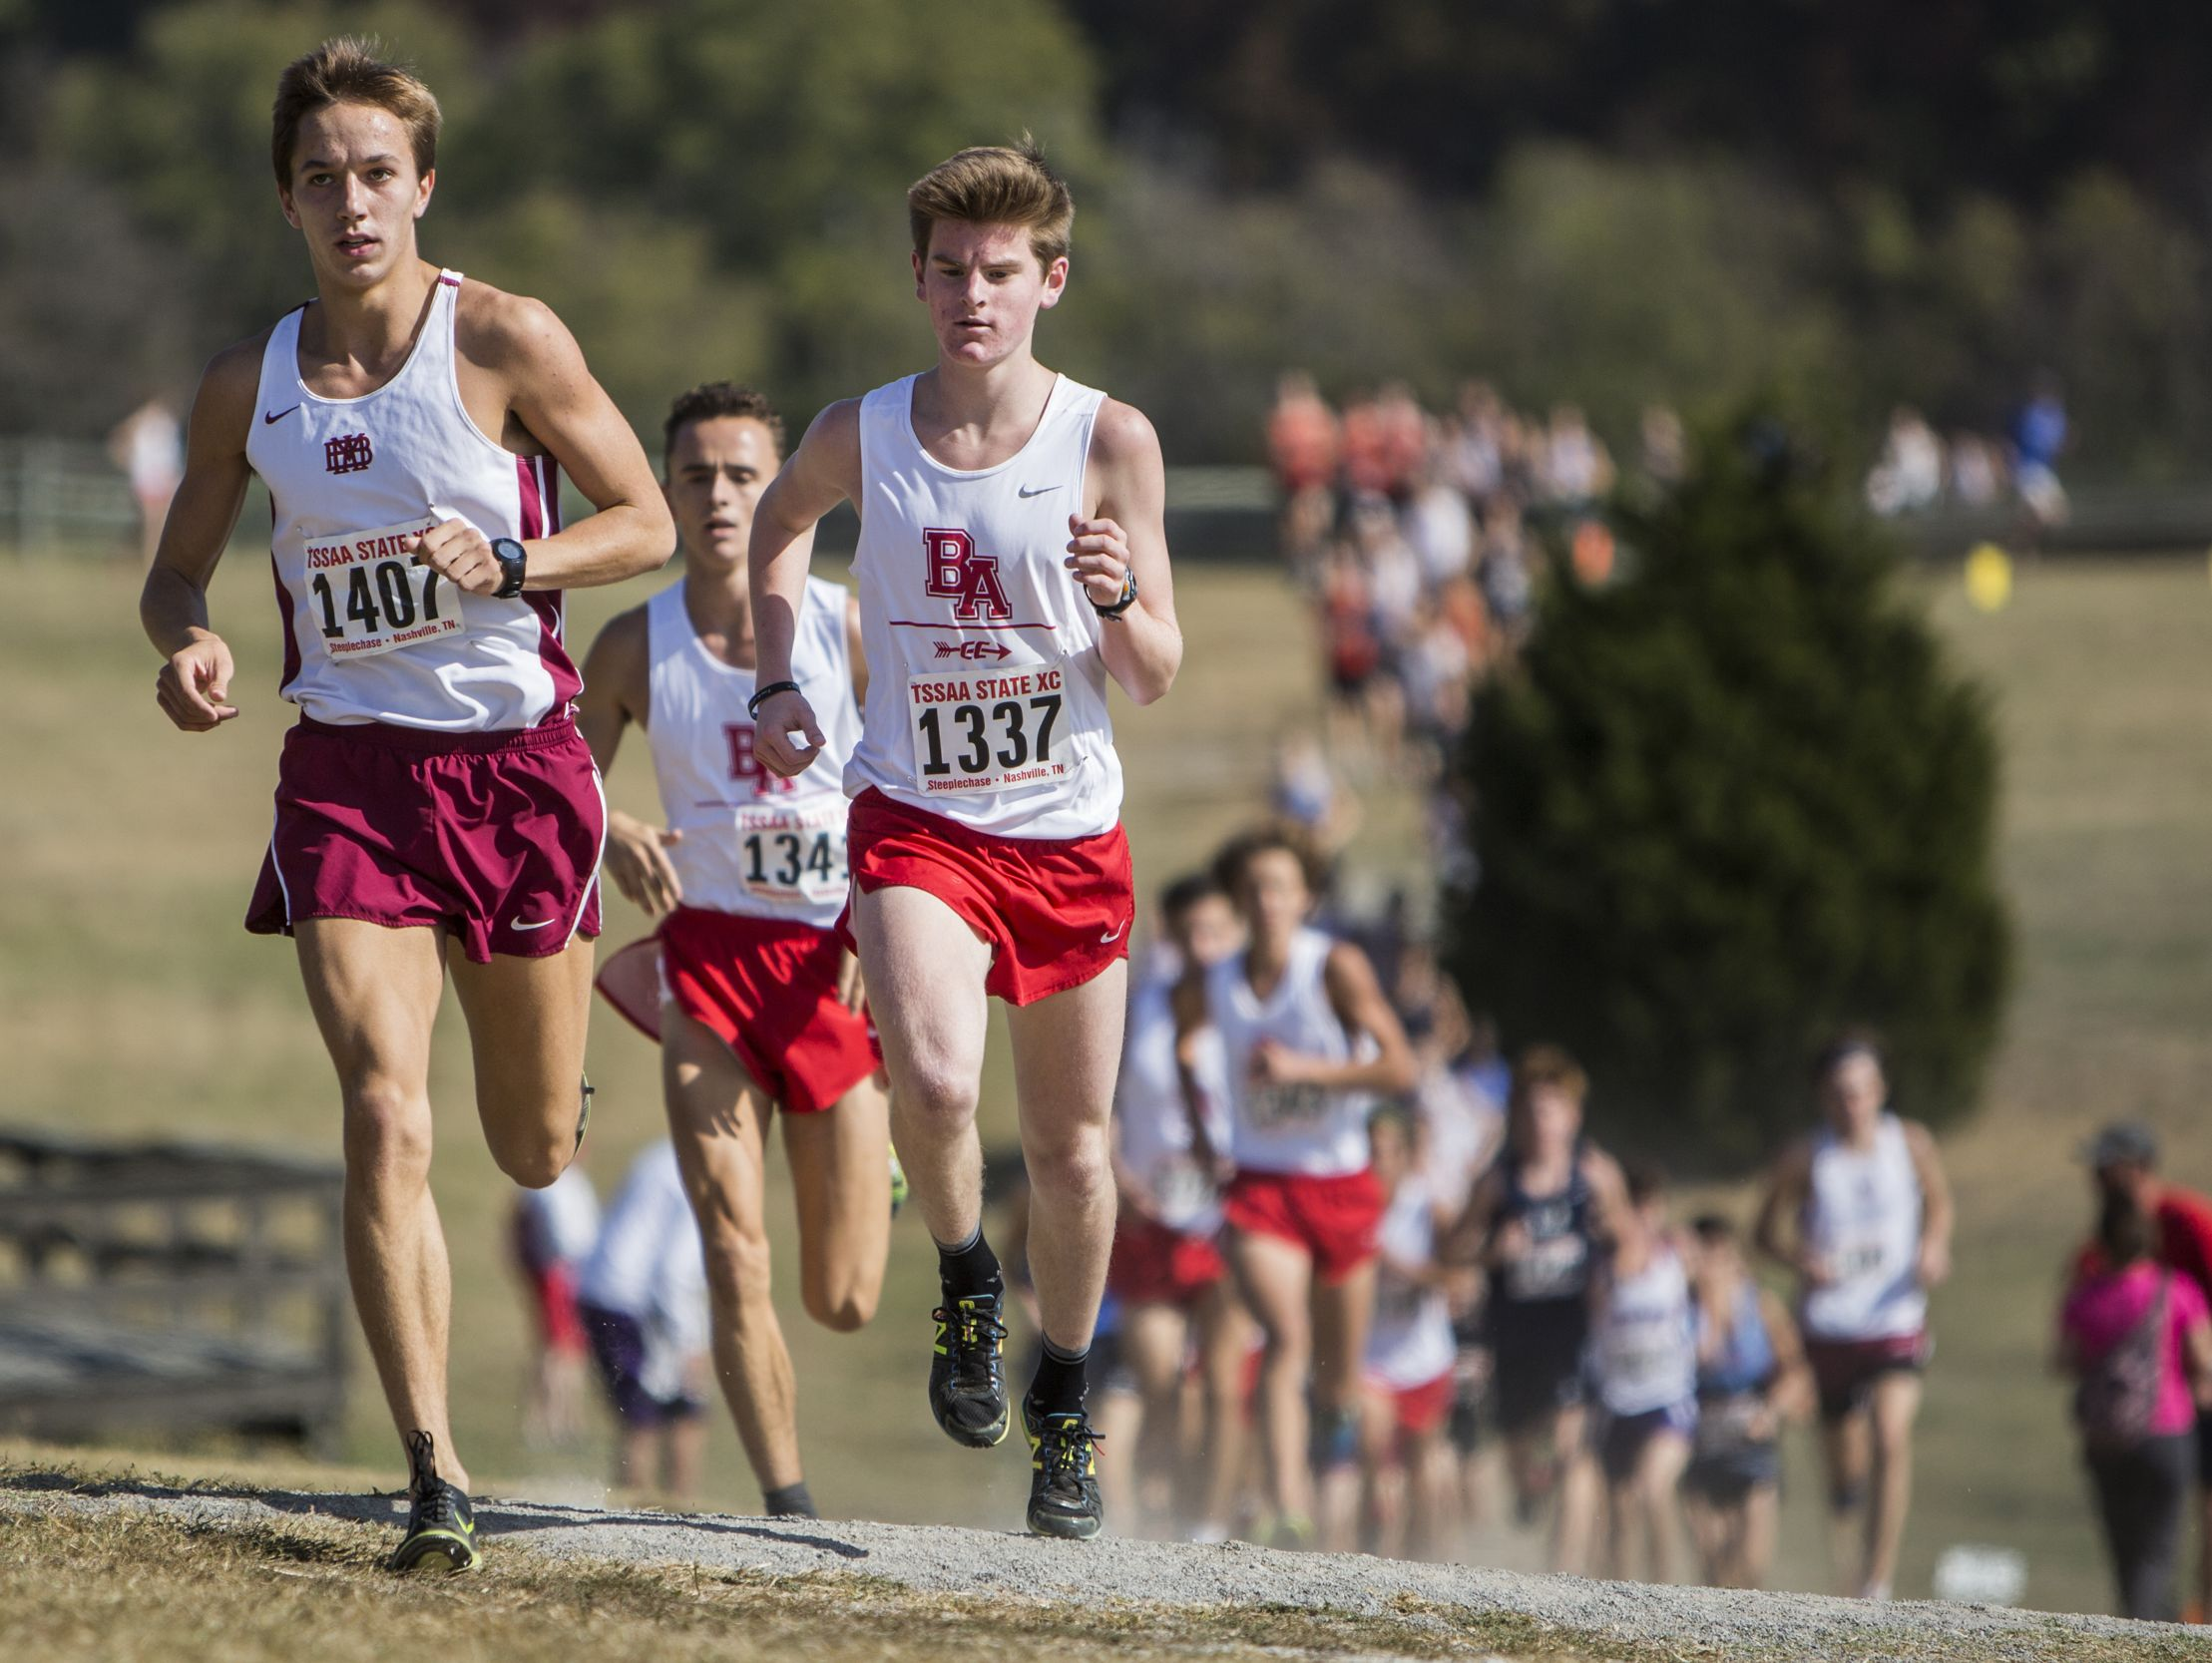 Will Peters of Montgomery Bell and Carter Cheeseman of Brentwood Academy lead the pack during the Division II-AA boys 2016 TSSAA State Cross Country Championship at Percy Warner Park.